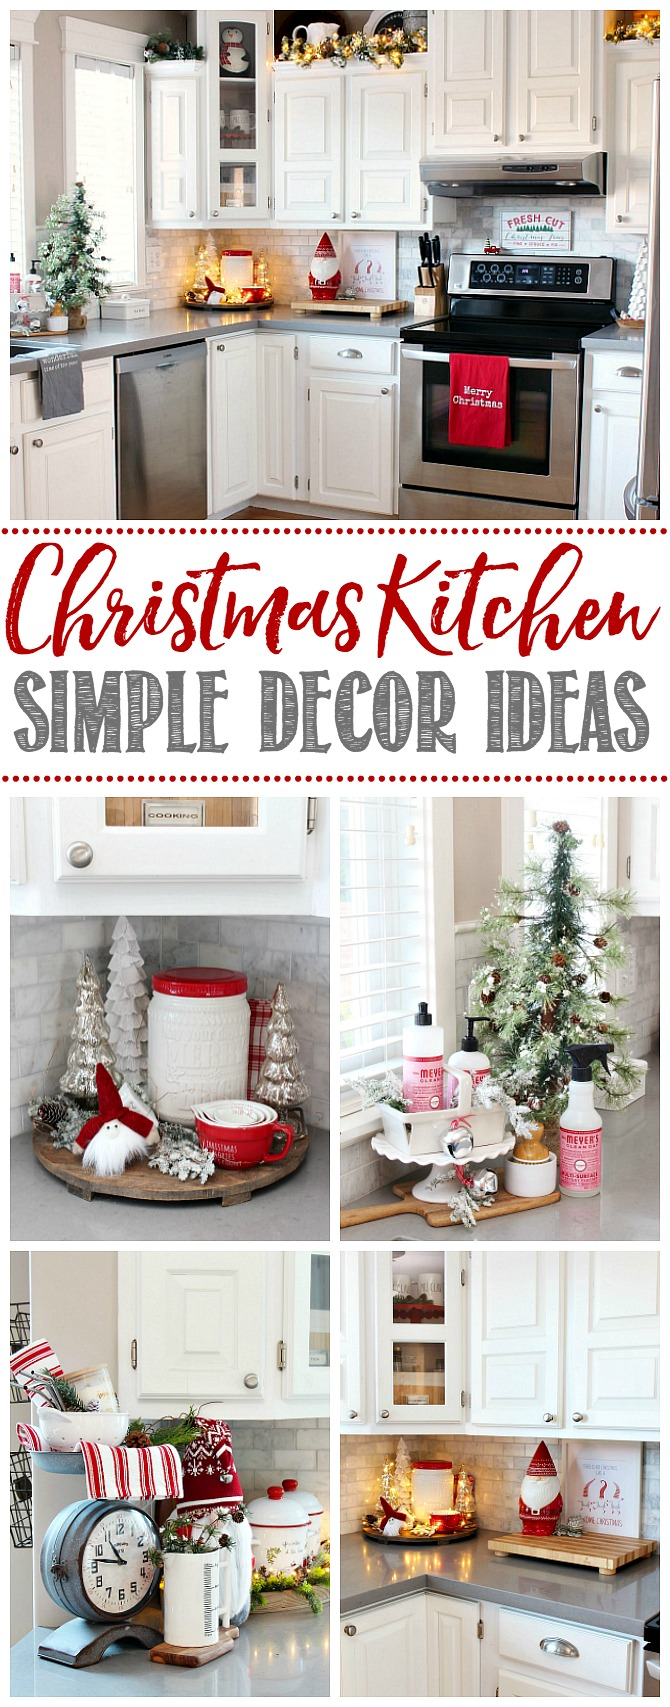 Collection of beautiful ideas to decorate you kitchen for Christmas.